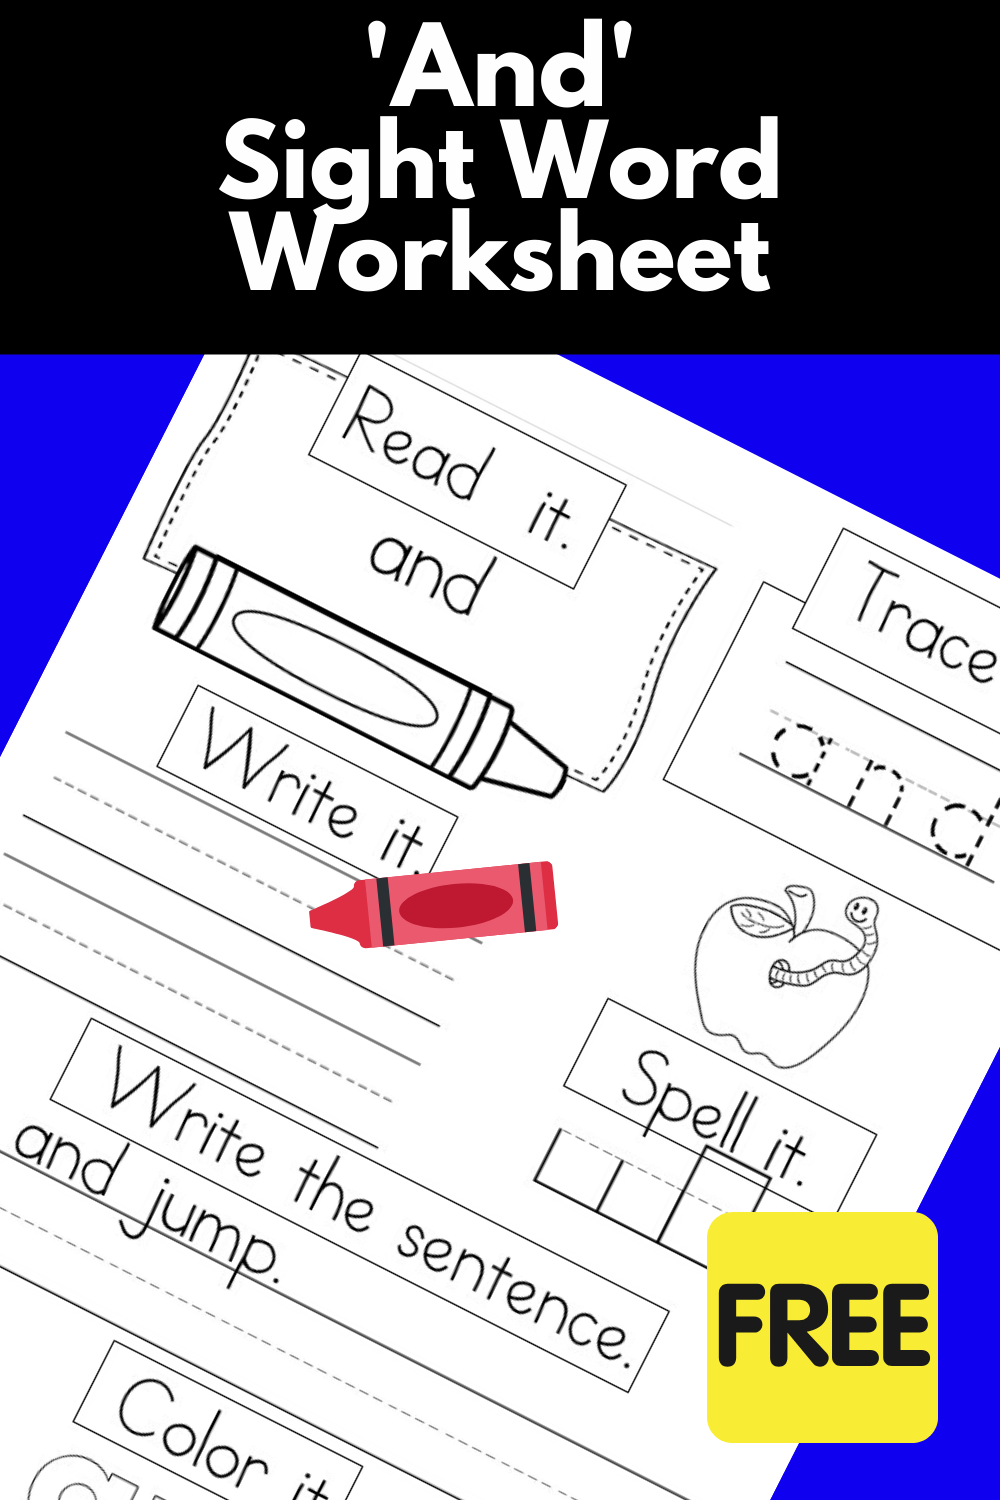 And Sight Word Worksheet Title